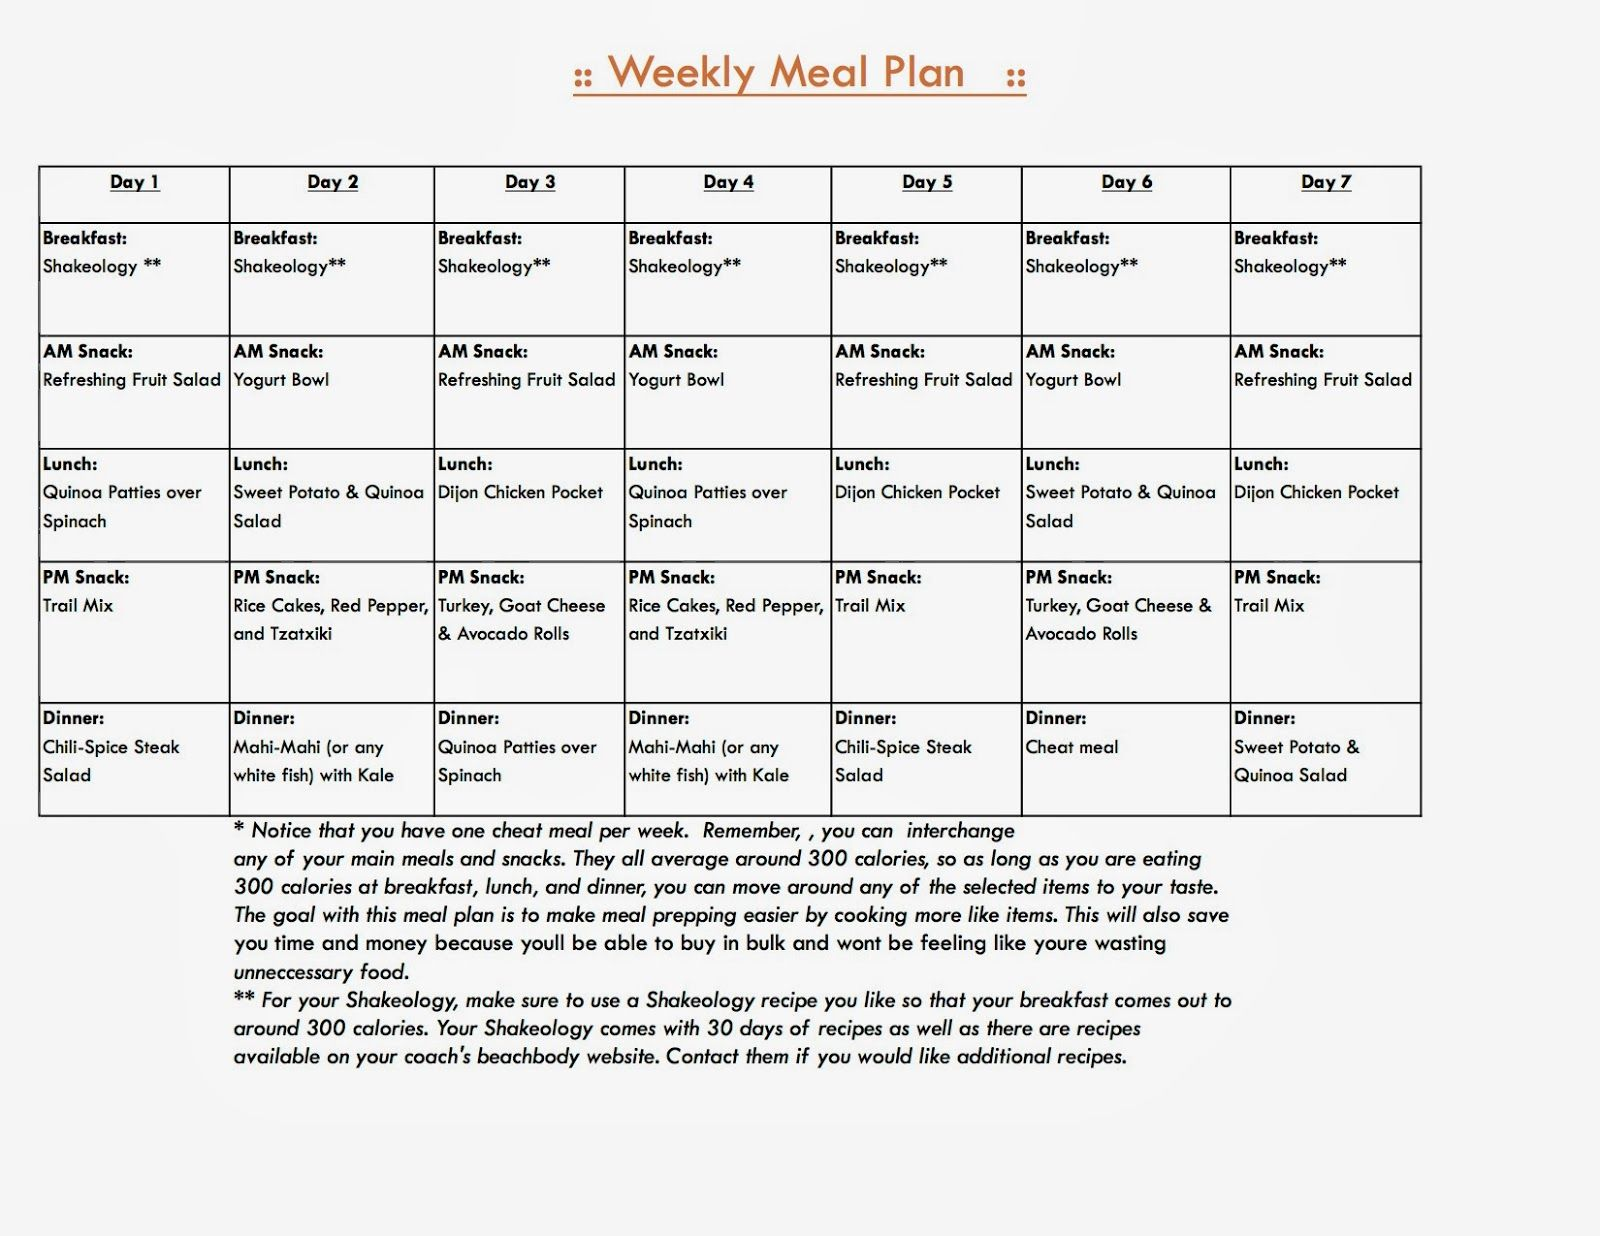 eek diet plan revealed - HD 1600×1236